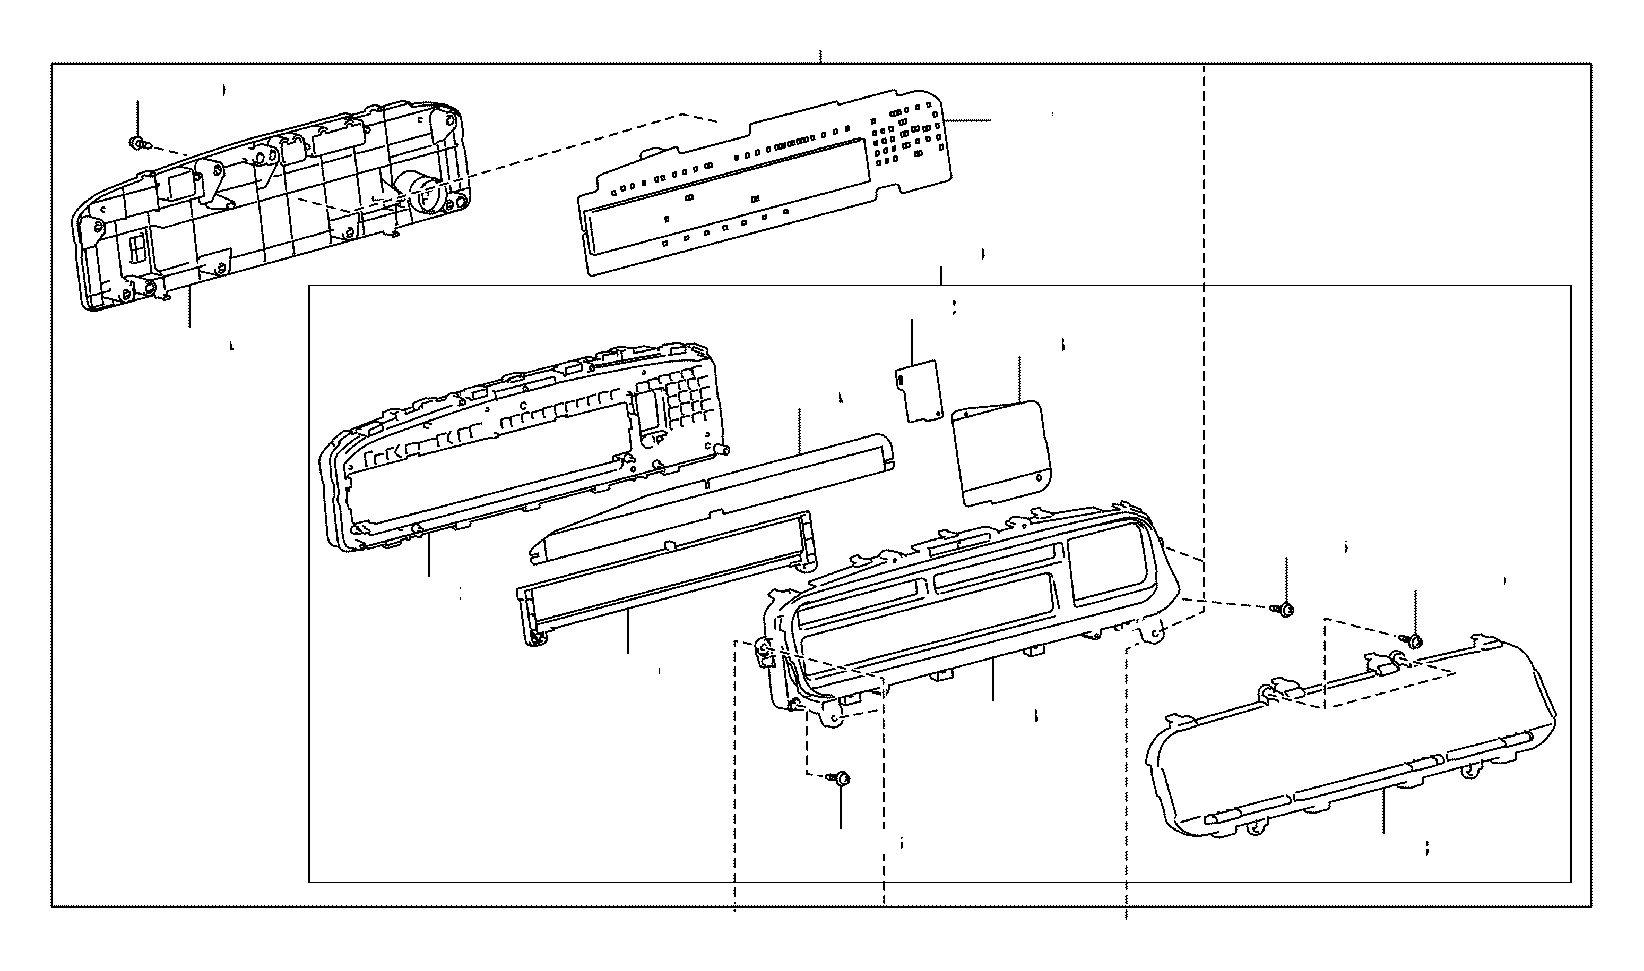 Toyota Prius V Instrument Panel Circuit Board Plate